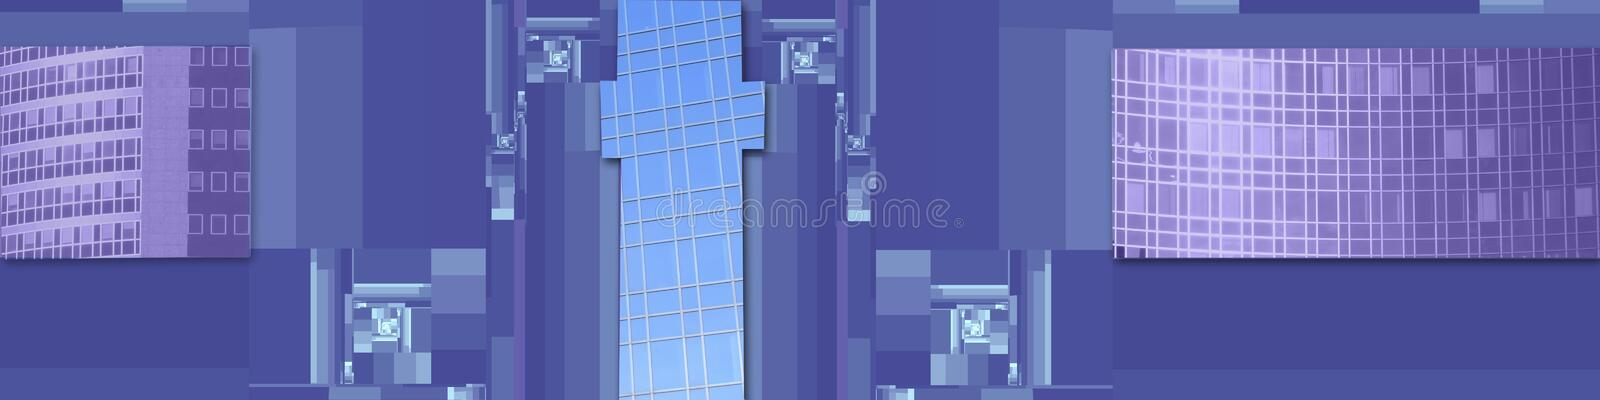 Conceptual business banner. This banner has mathematical shapes (squares and rectangles) and in some of them are parts of business buildings with grid-like widow vector illustration